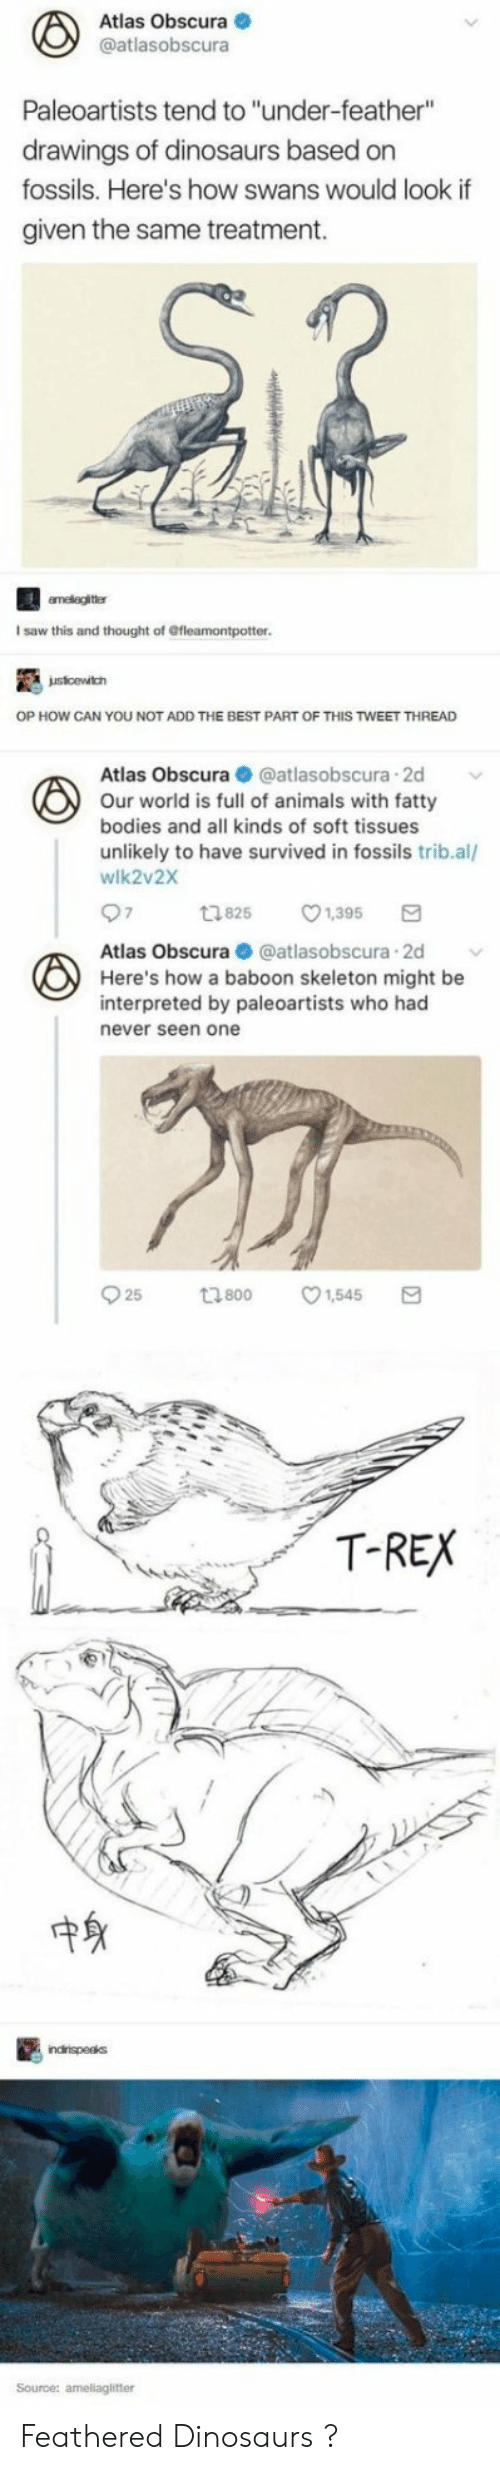 """Animals, Bodies , and Saw: Atlas Obscura  @atlasobscura  Paleoartists tend to """"under-feather""""  drawings of dinosaurs based on  fossils. Here's how swans would look if  given the same treatment.  I saw this and thought of Gfleamontpotter  OP HOW CAN YOU NOT ADD THE BEST PART OF THIS TWEET THREAD  Atlas Obscura @atlasobscura.2d  Our world is full of animals with fatty  bodies and all kinds of soft tissues  unlikely to have survived in fossils trib.al/  wlk2v2X  1825 1,395  Atlas Obscura  atlasobscura 2d  Here's how a baboon skeleton might be  interpreted by paleoartists who had  never seen one  T-REX  中身  Source: ameliaglitter Feathered Dinosaurs ?"""